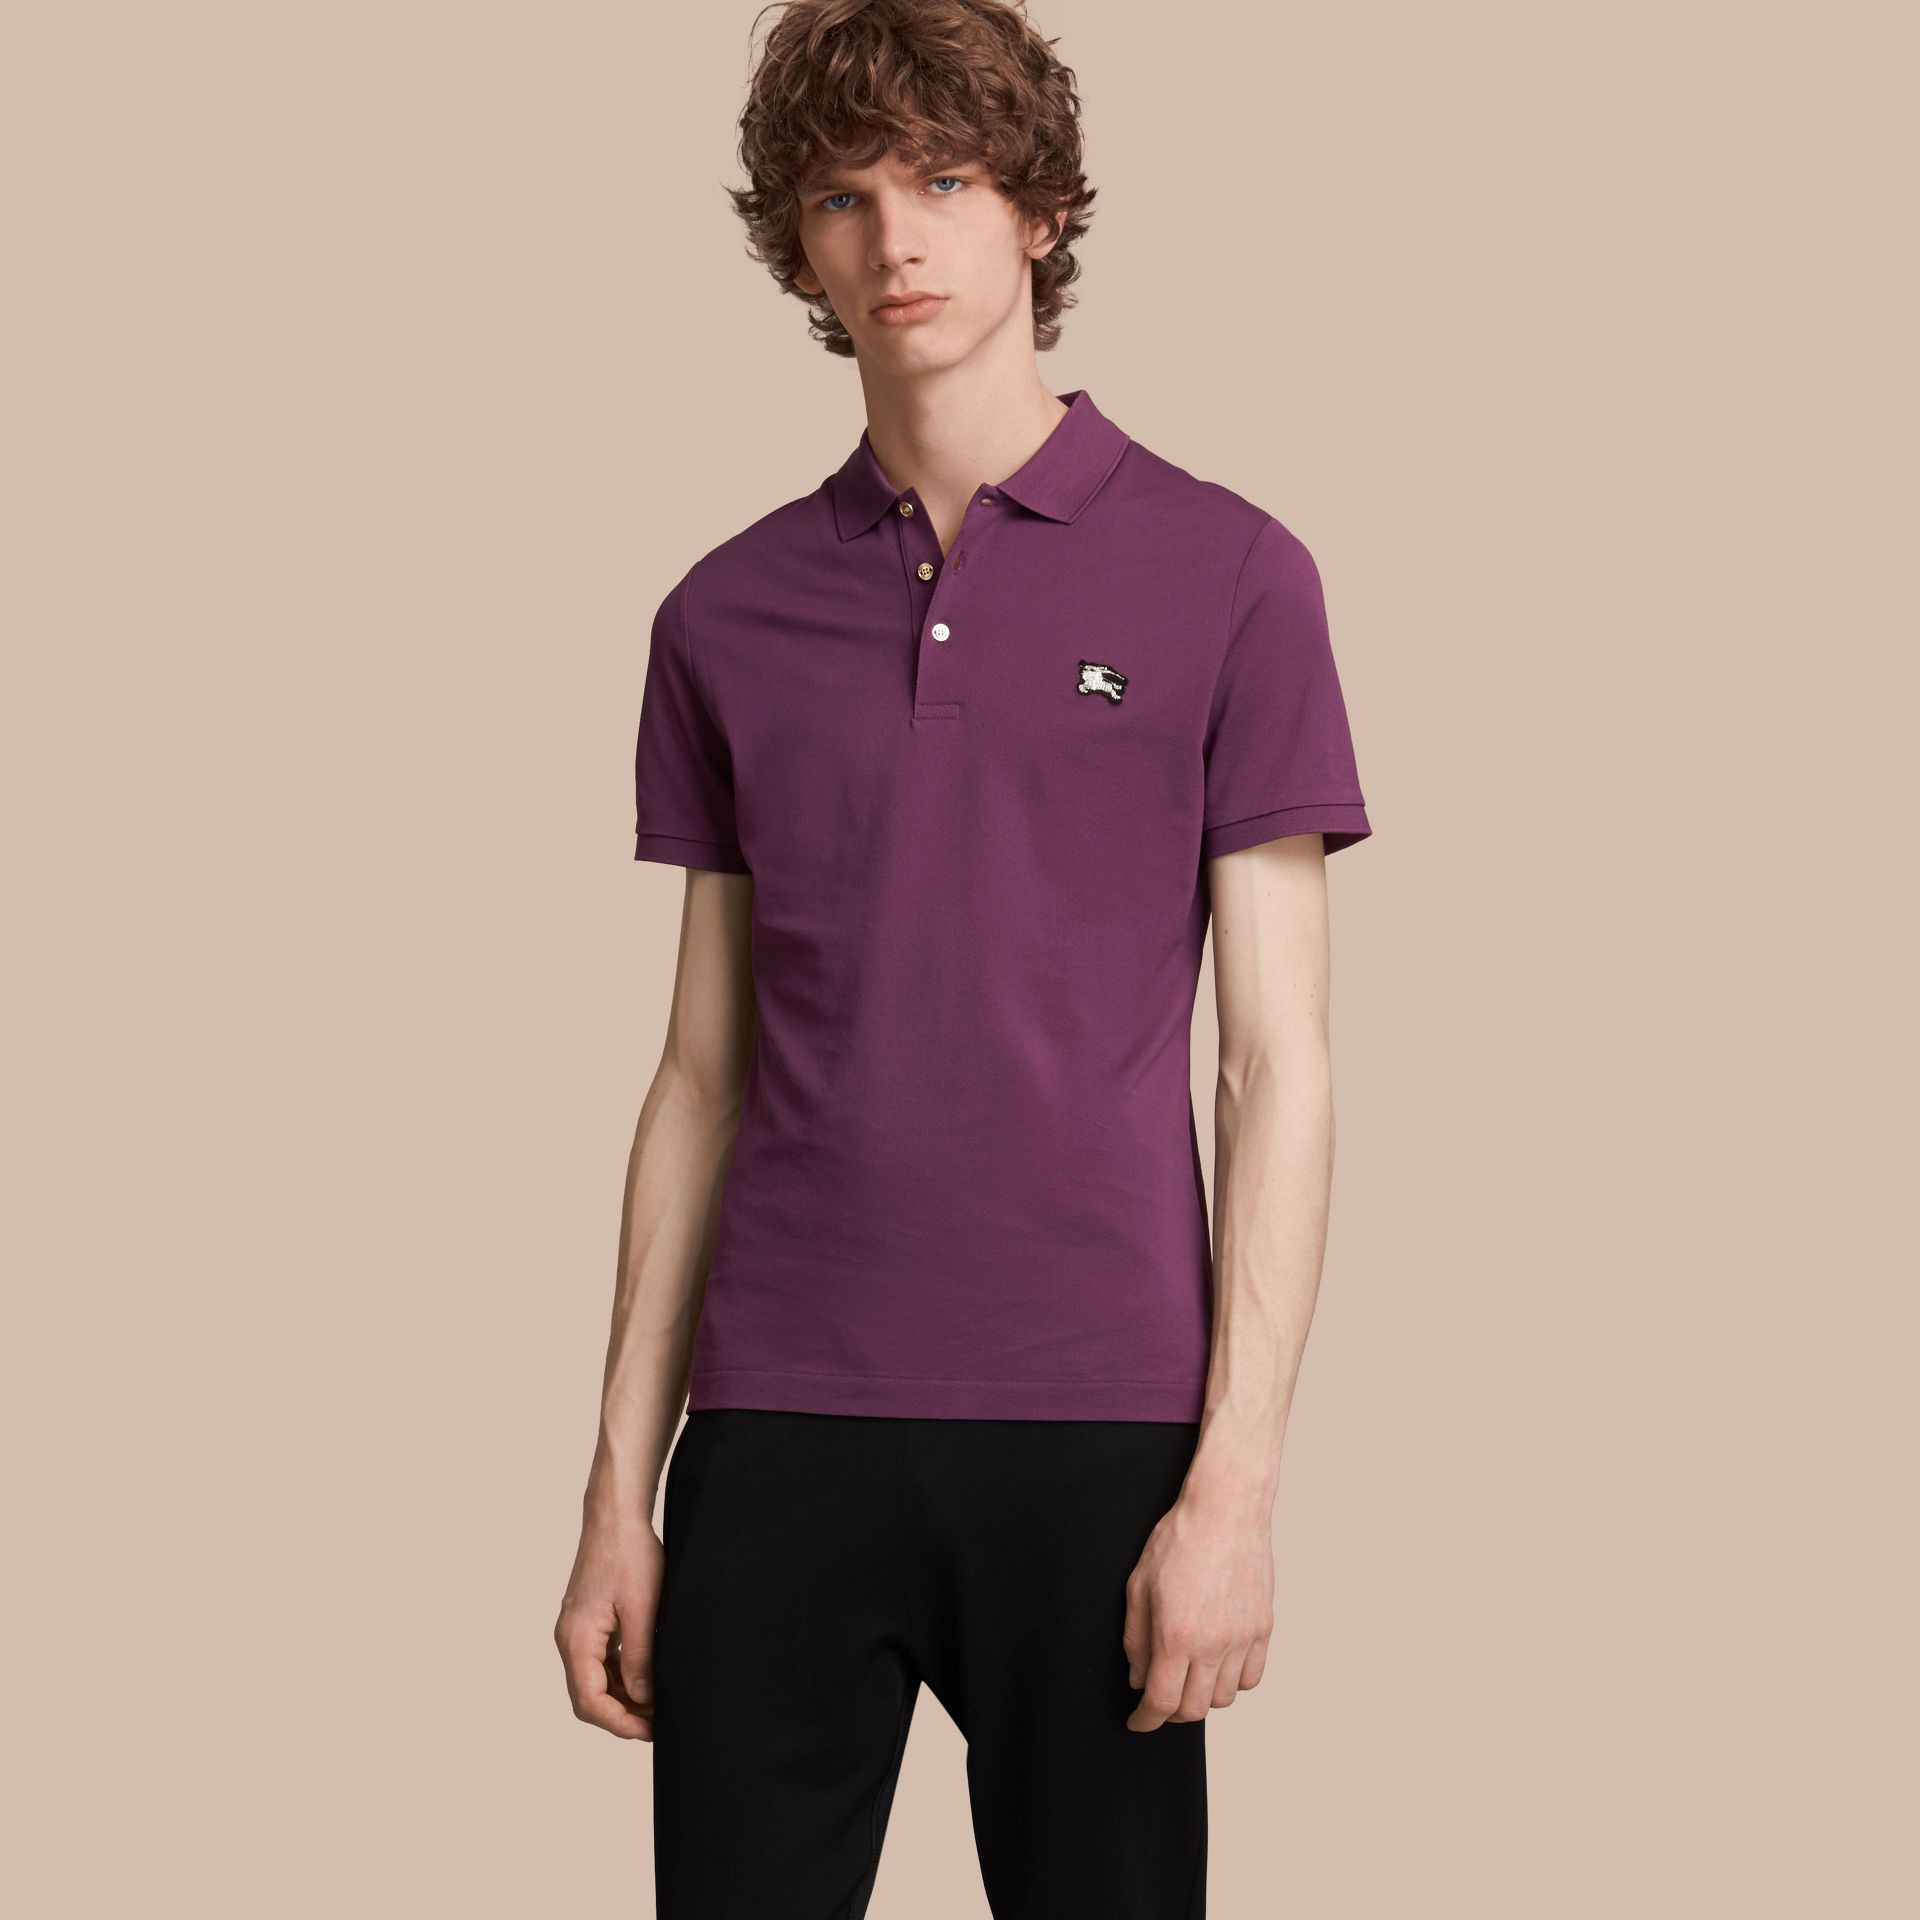 Cotton Piqué Polo Shirt in Heather - Men | Burberry Hong Kong - gallery image 1